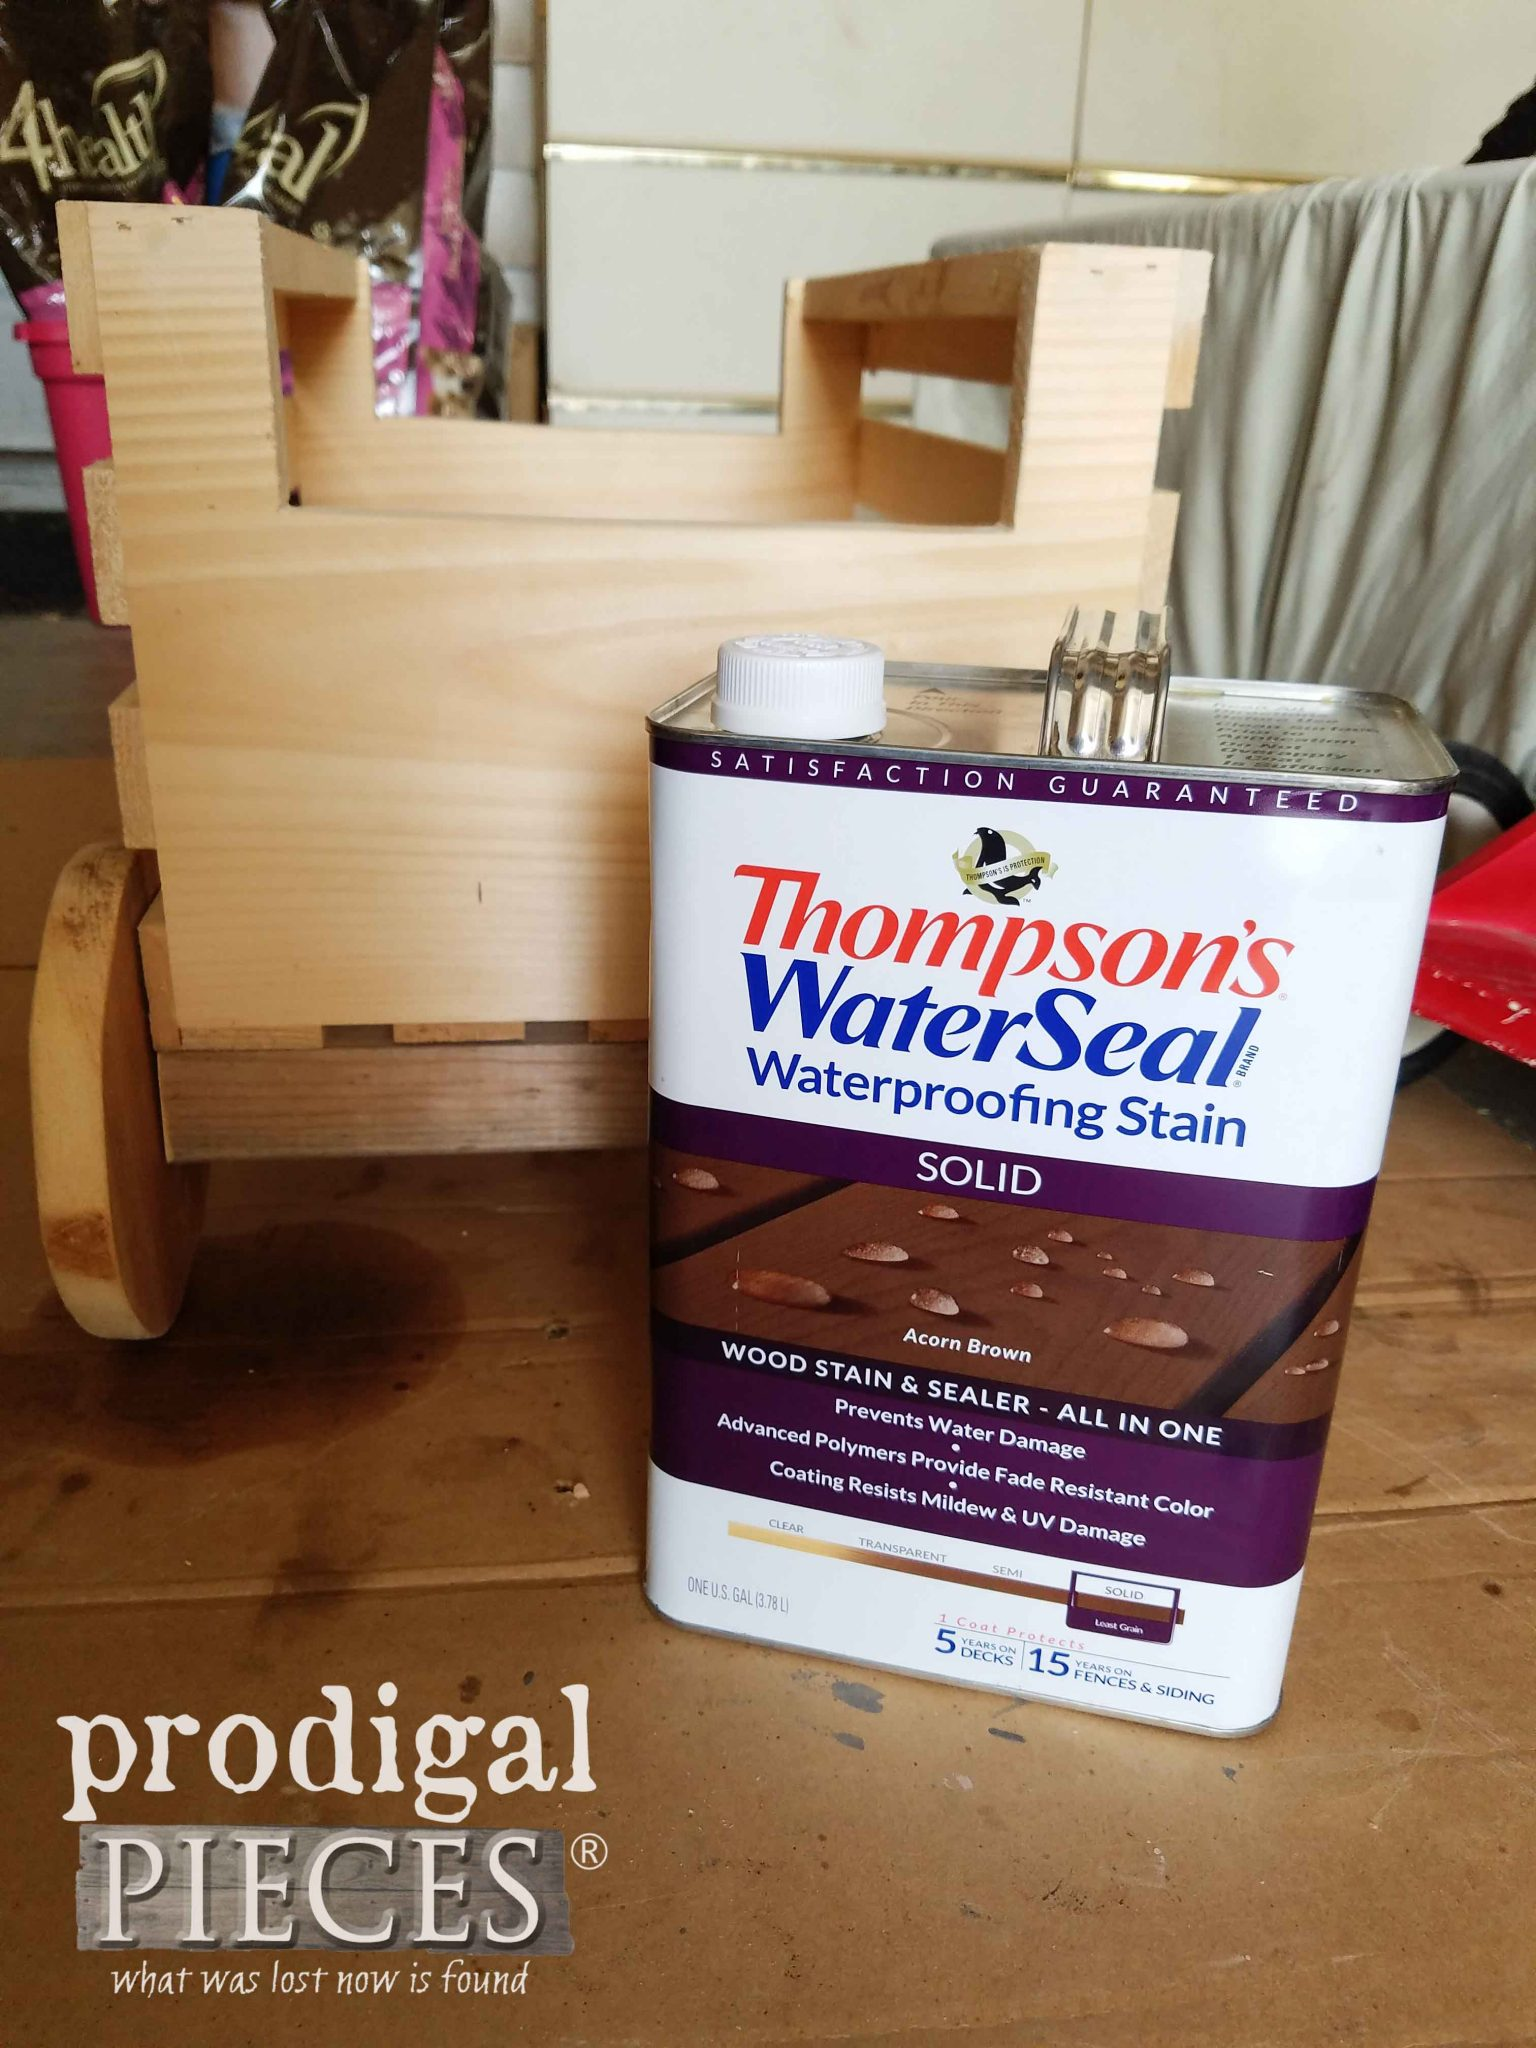 Thompson's WaterSeal Waterproofing Stain in Acorn Brown for Wagon by Prodigal Pieces | prodigalpieces.com